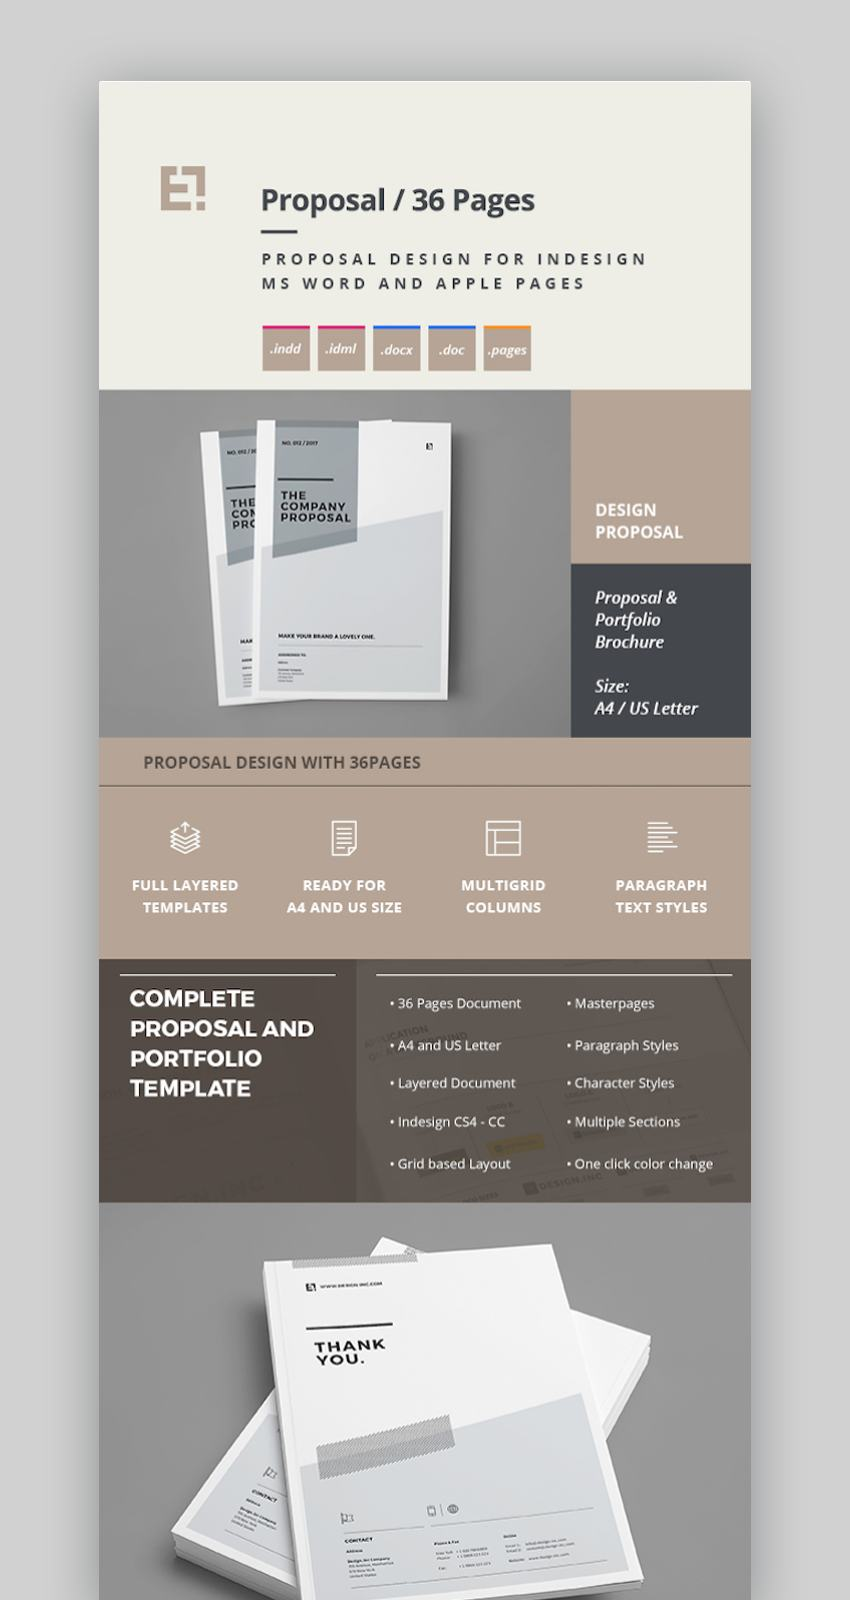 Proposal Design with 36 Pages